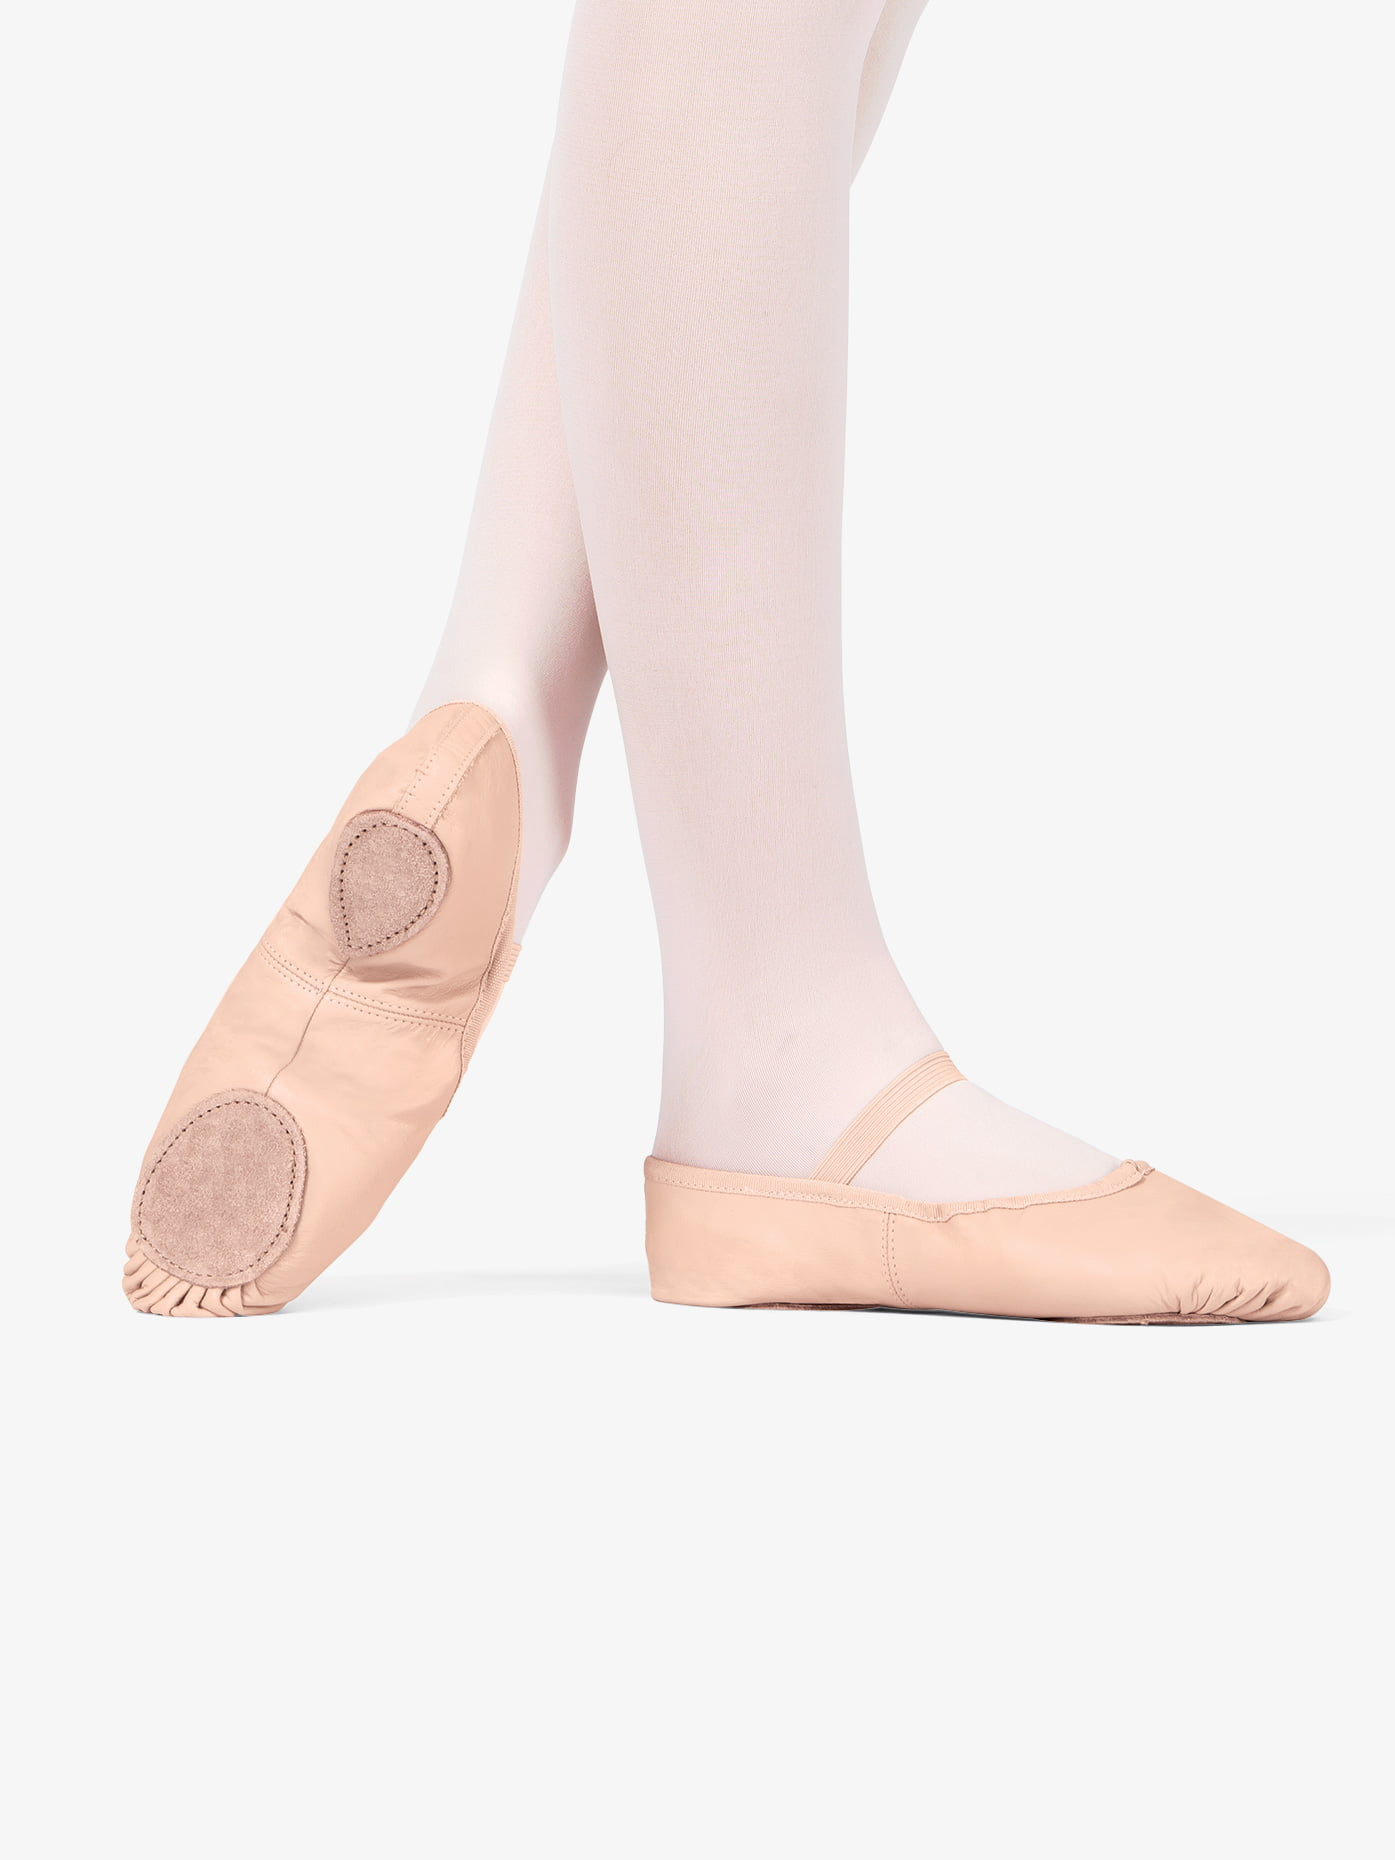 Child Leather Split-Sole Ballet Shoes by THEATRICALS